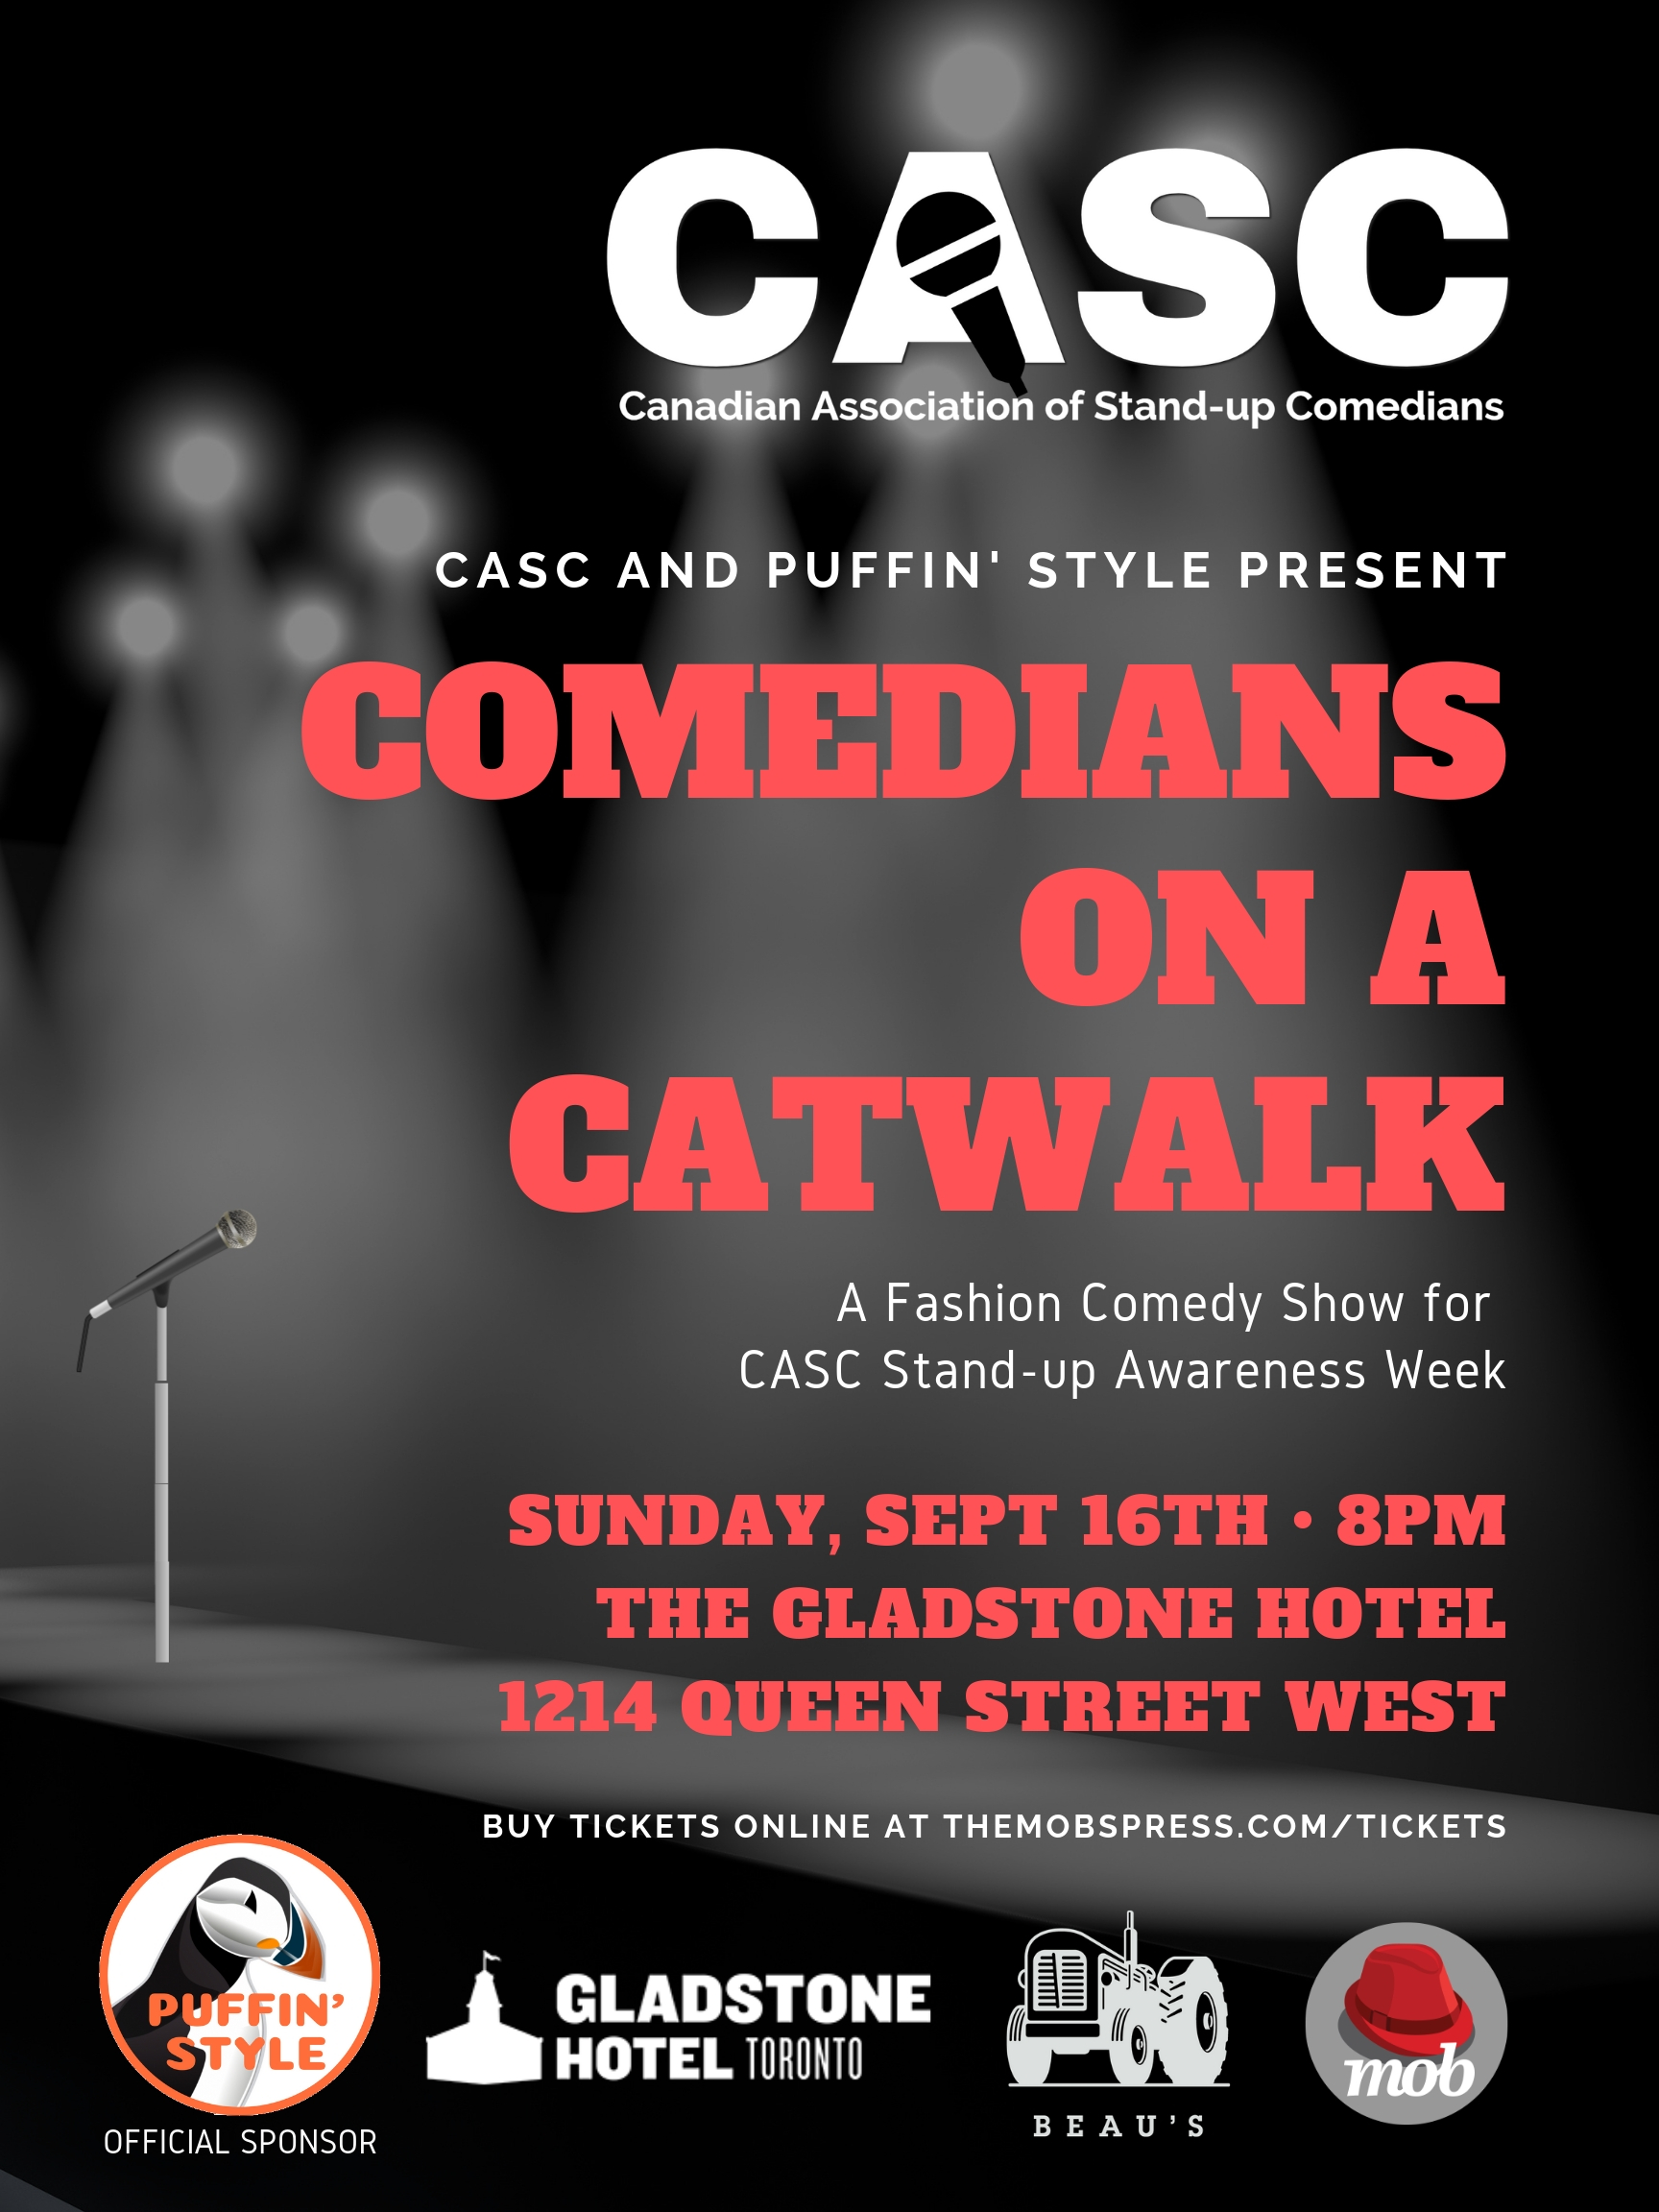 3comedianson a catwalk wearinG couture - CASC - Canadian